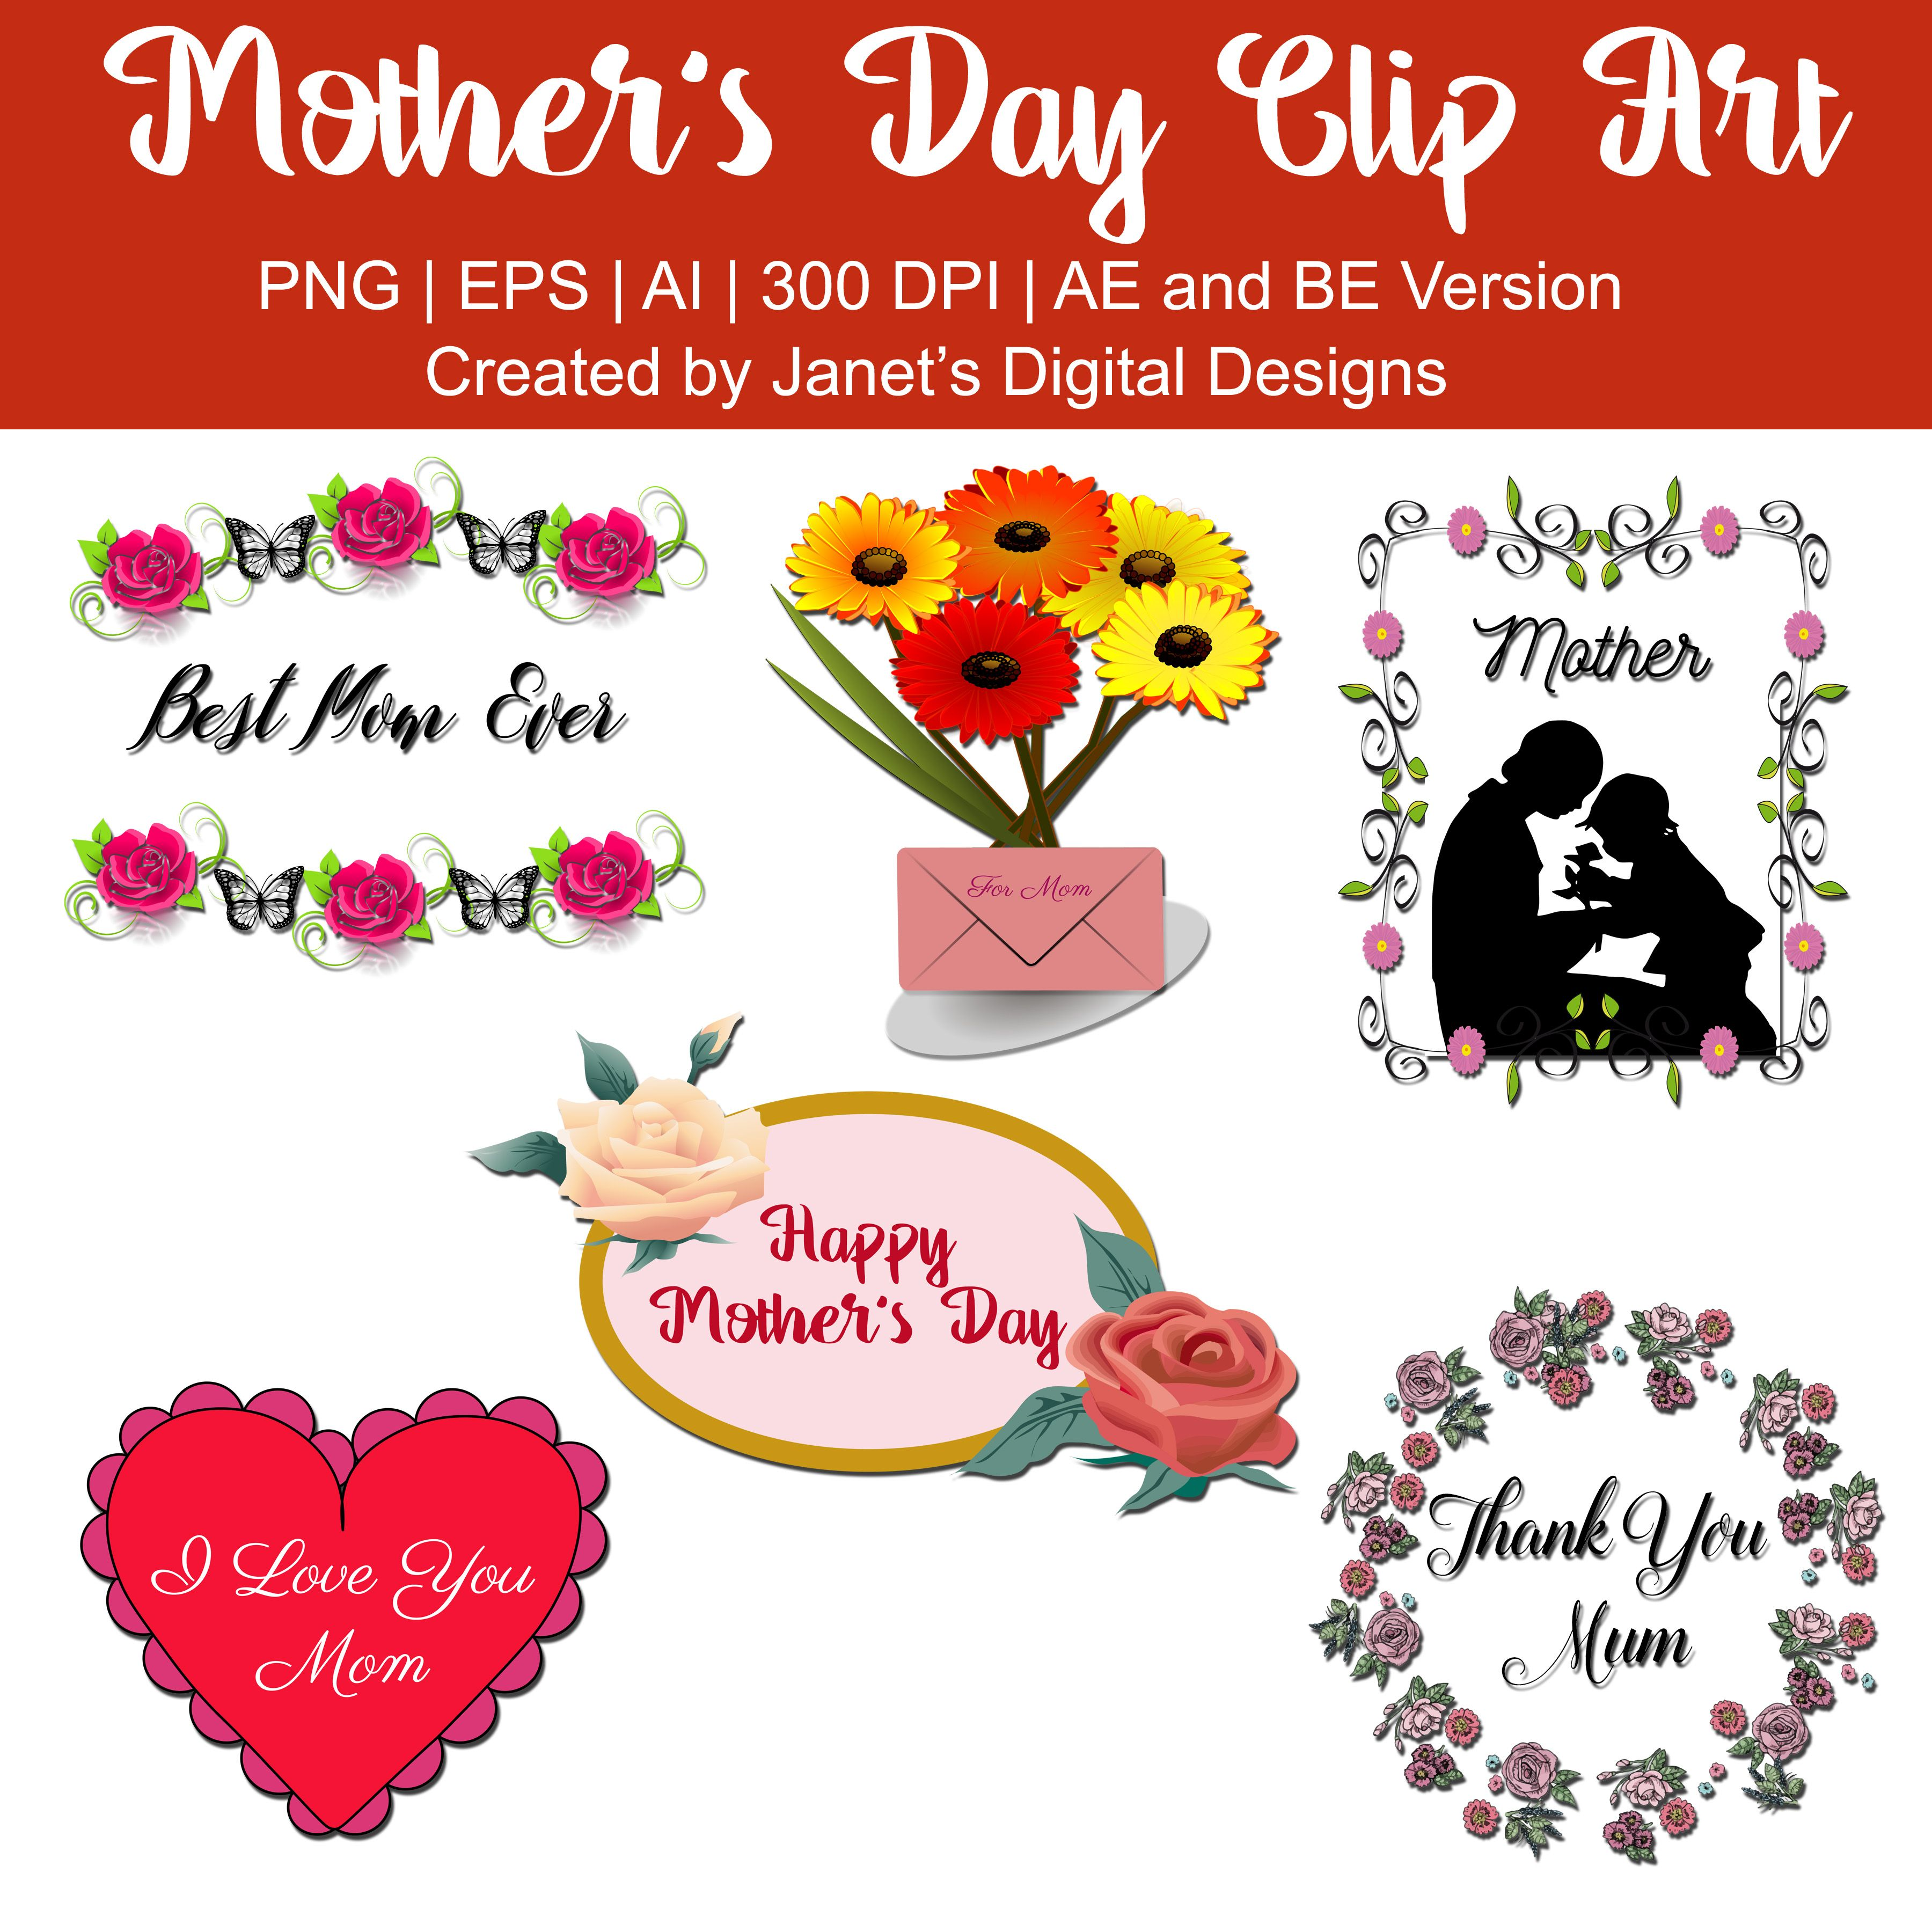 A Set Of 6 Mother S Day Clip Arts Containing A Best Mom Ever Best Mum Ever Clip Art A Bouquet With Envelope Cl Mother S Day Clip Art Clip Art Heart Clip Art